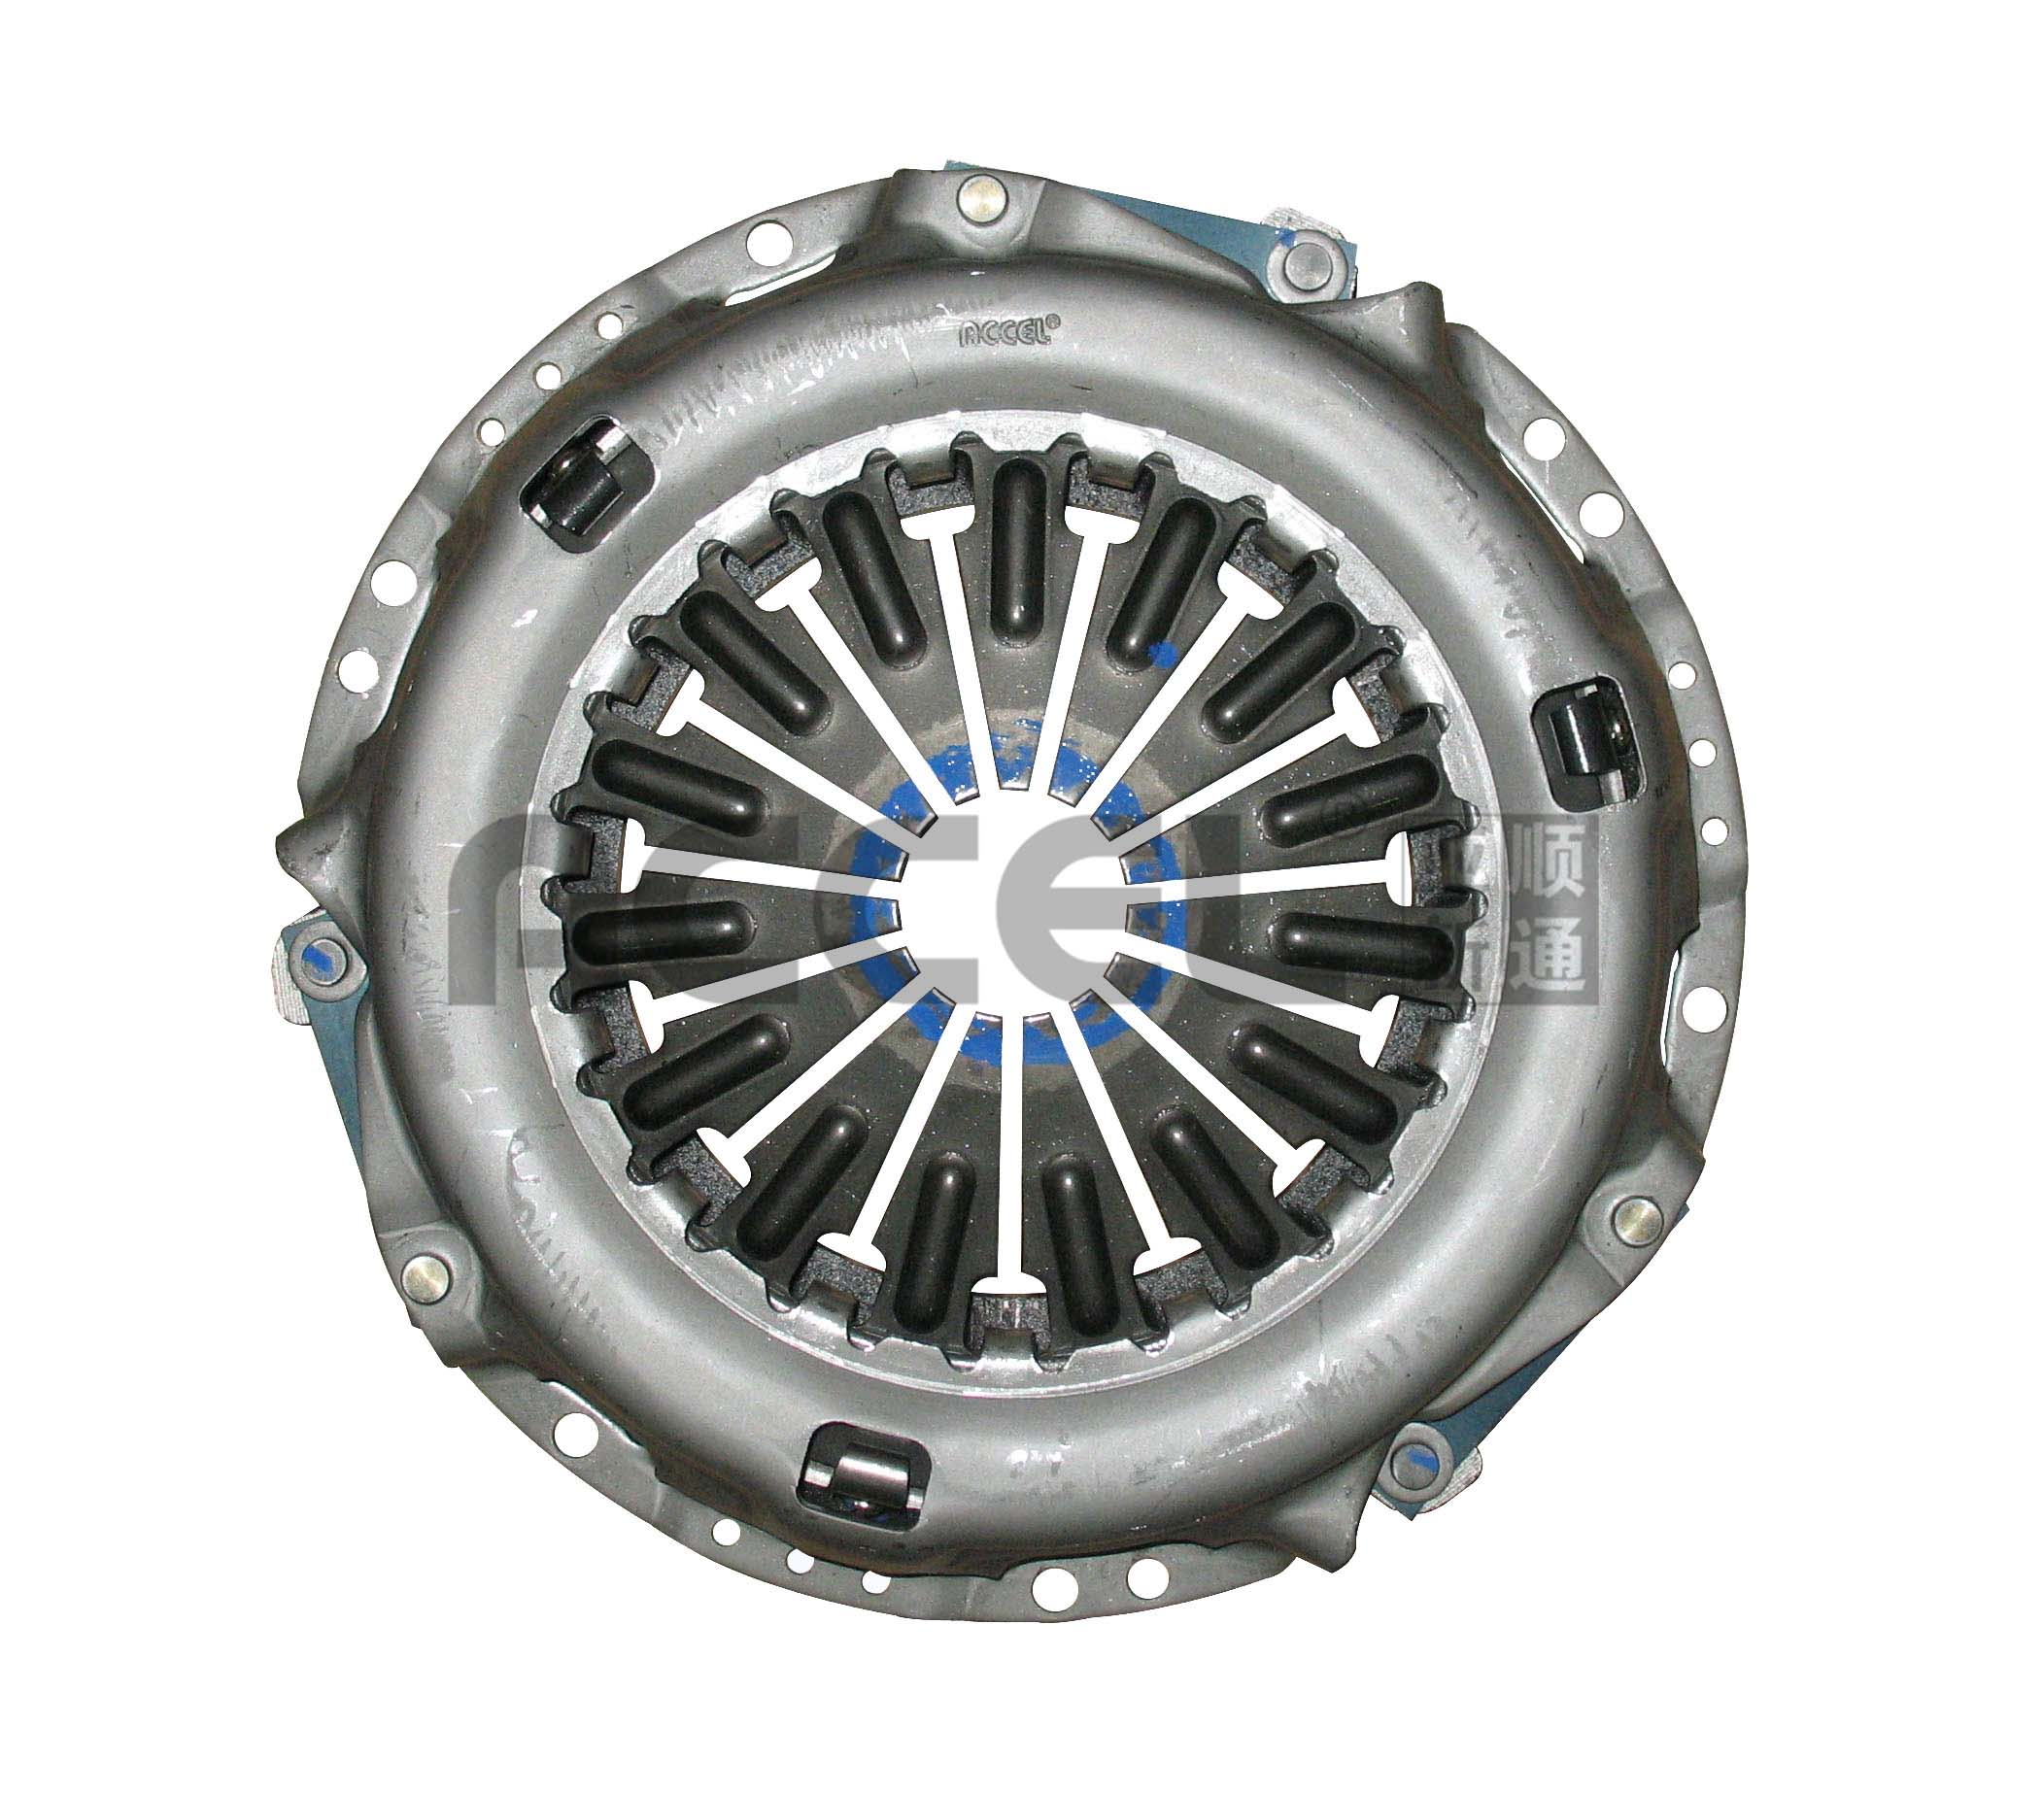 Clutch Cover/OE:31210-35200/253*158*276/CTY-025/TOYOTA/LY348/CT-106